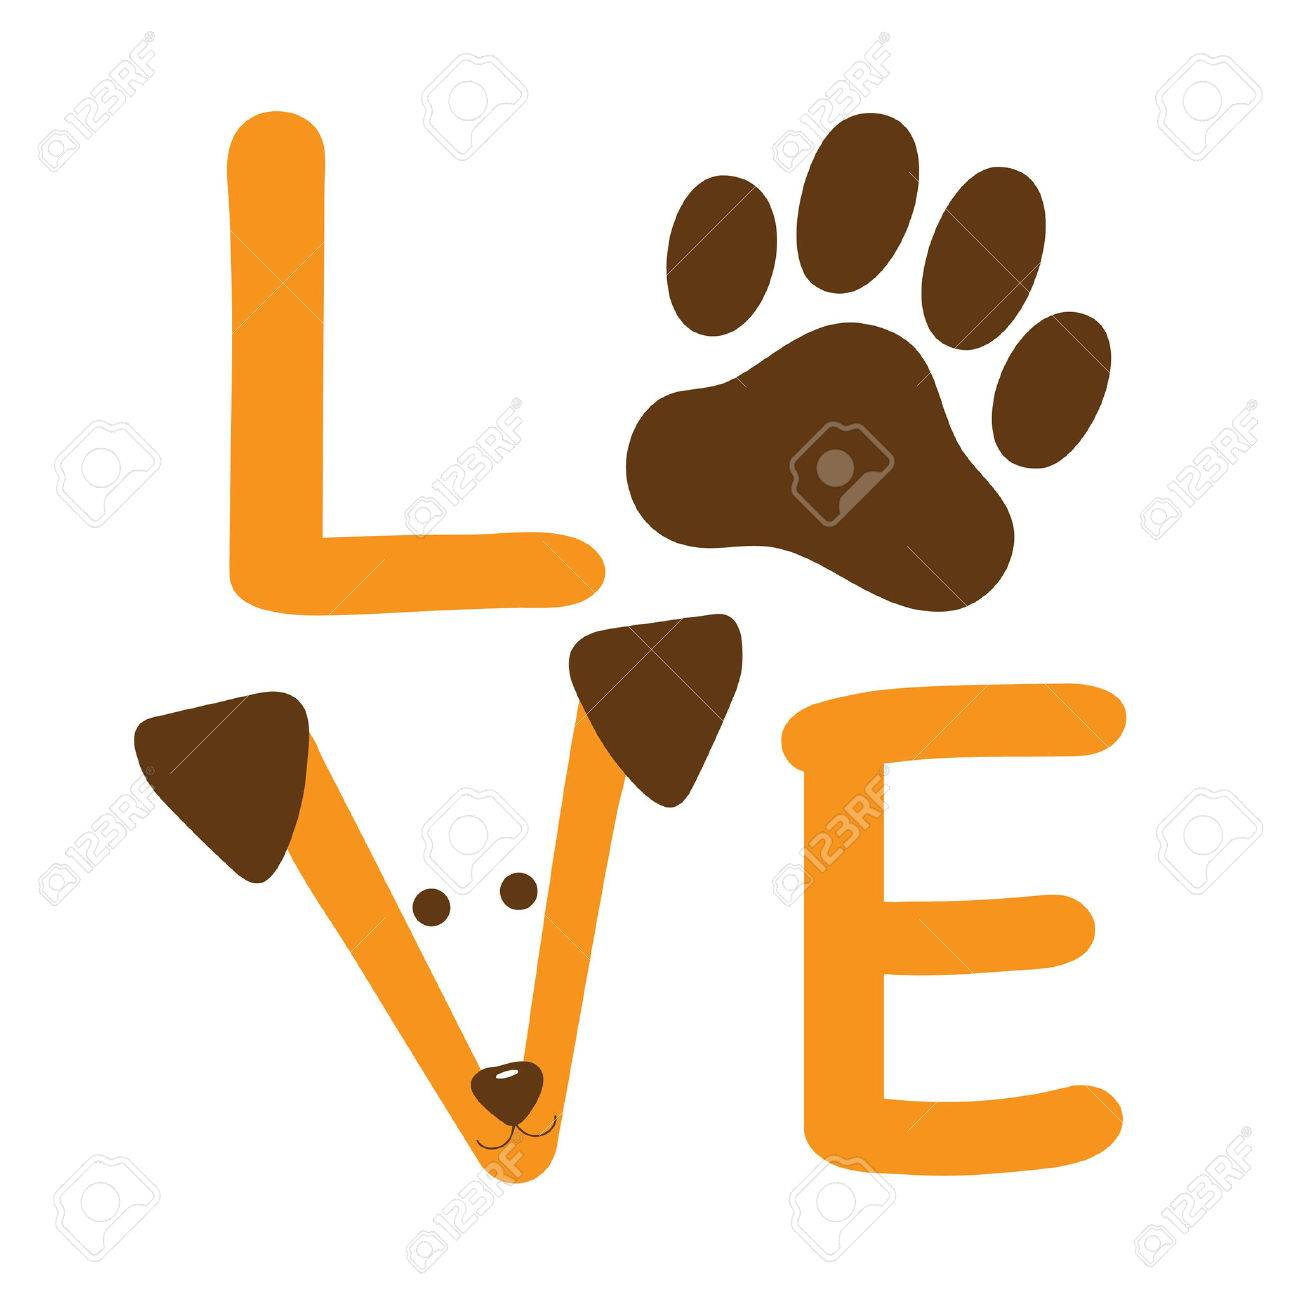 A graphic of the word love showing a dog paw and a dog's face - 39329465